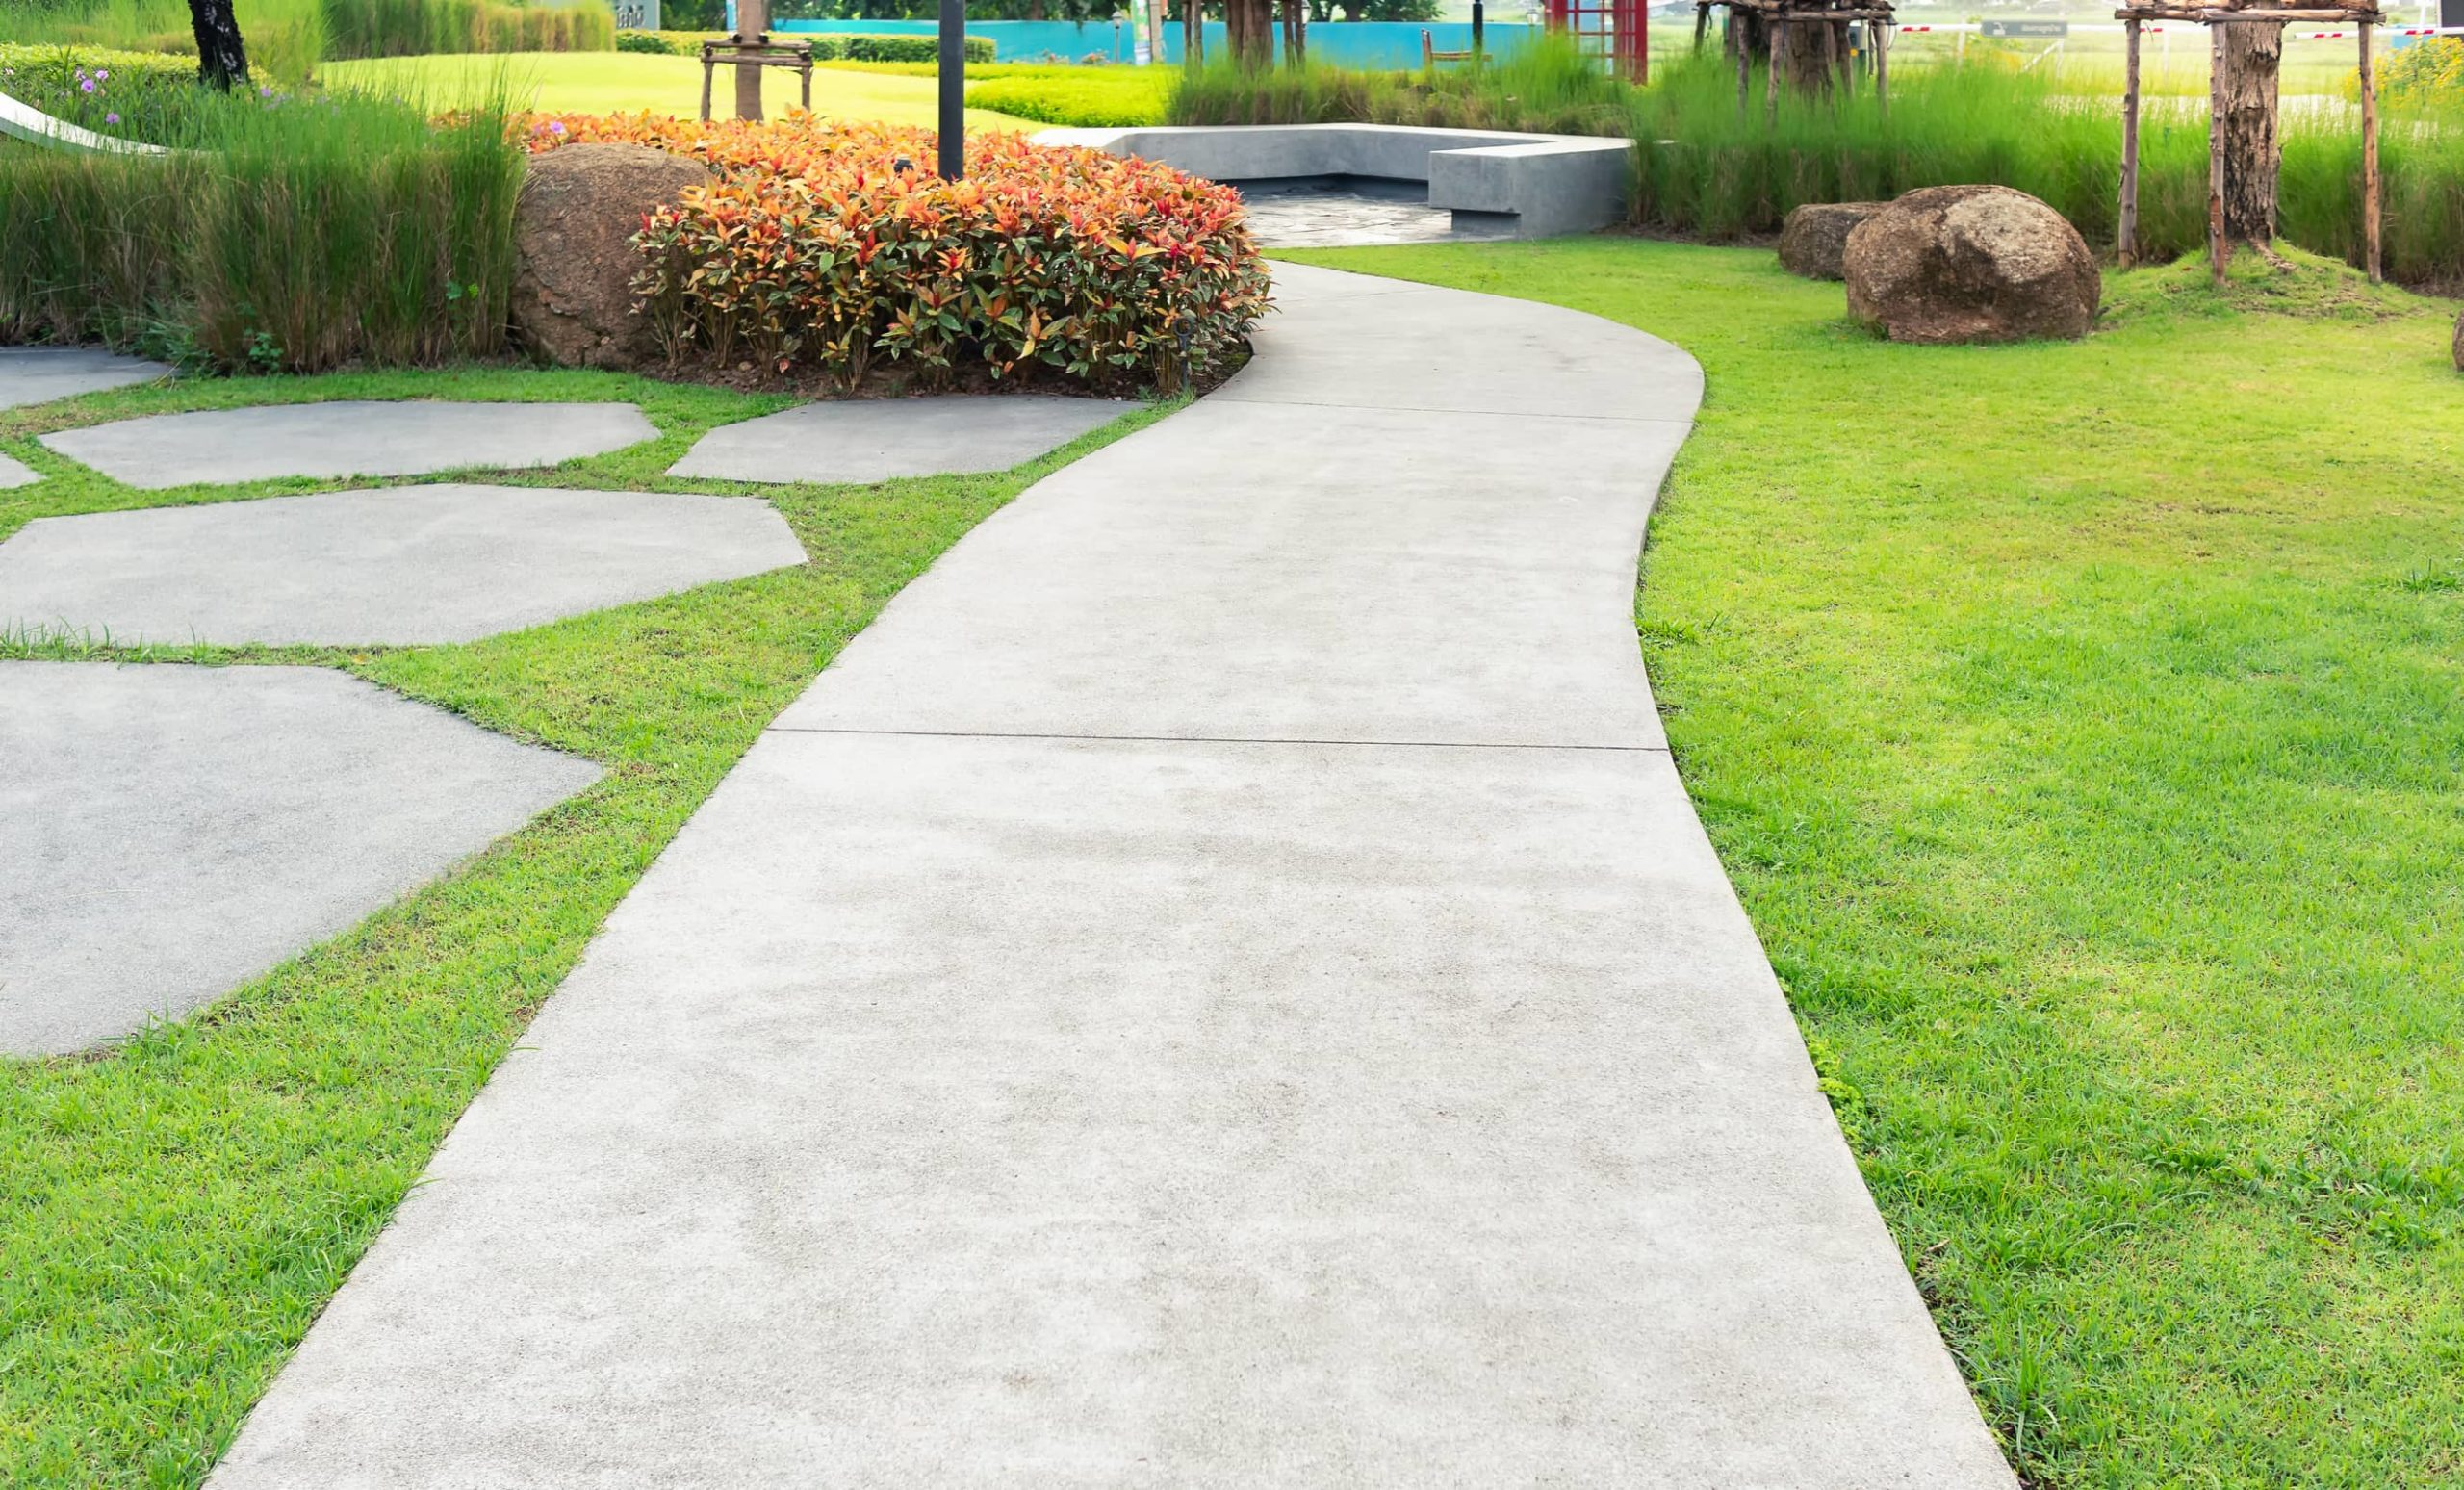 This is a picture of a concrete walkway with some decorative concrete paths and concrete bench in a garden.